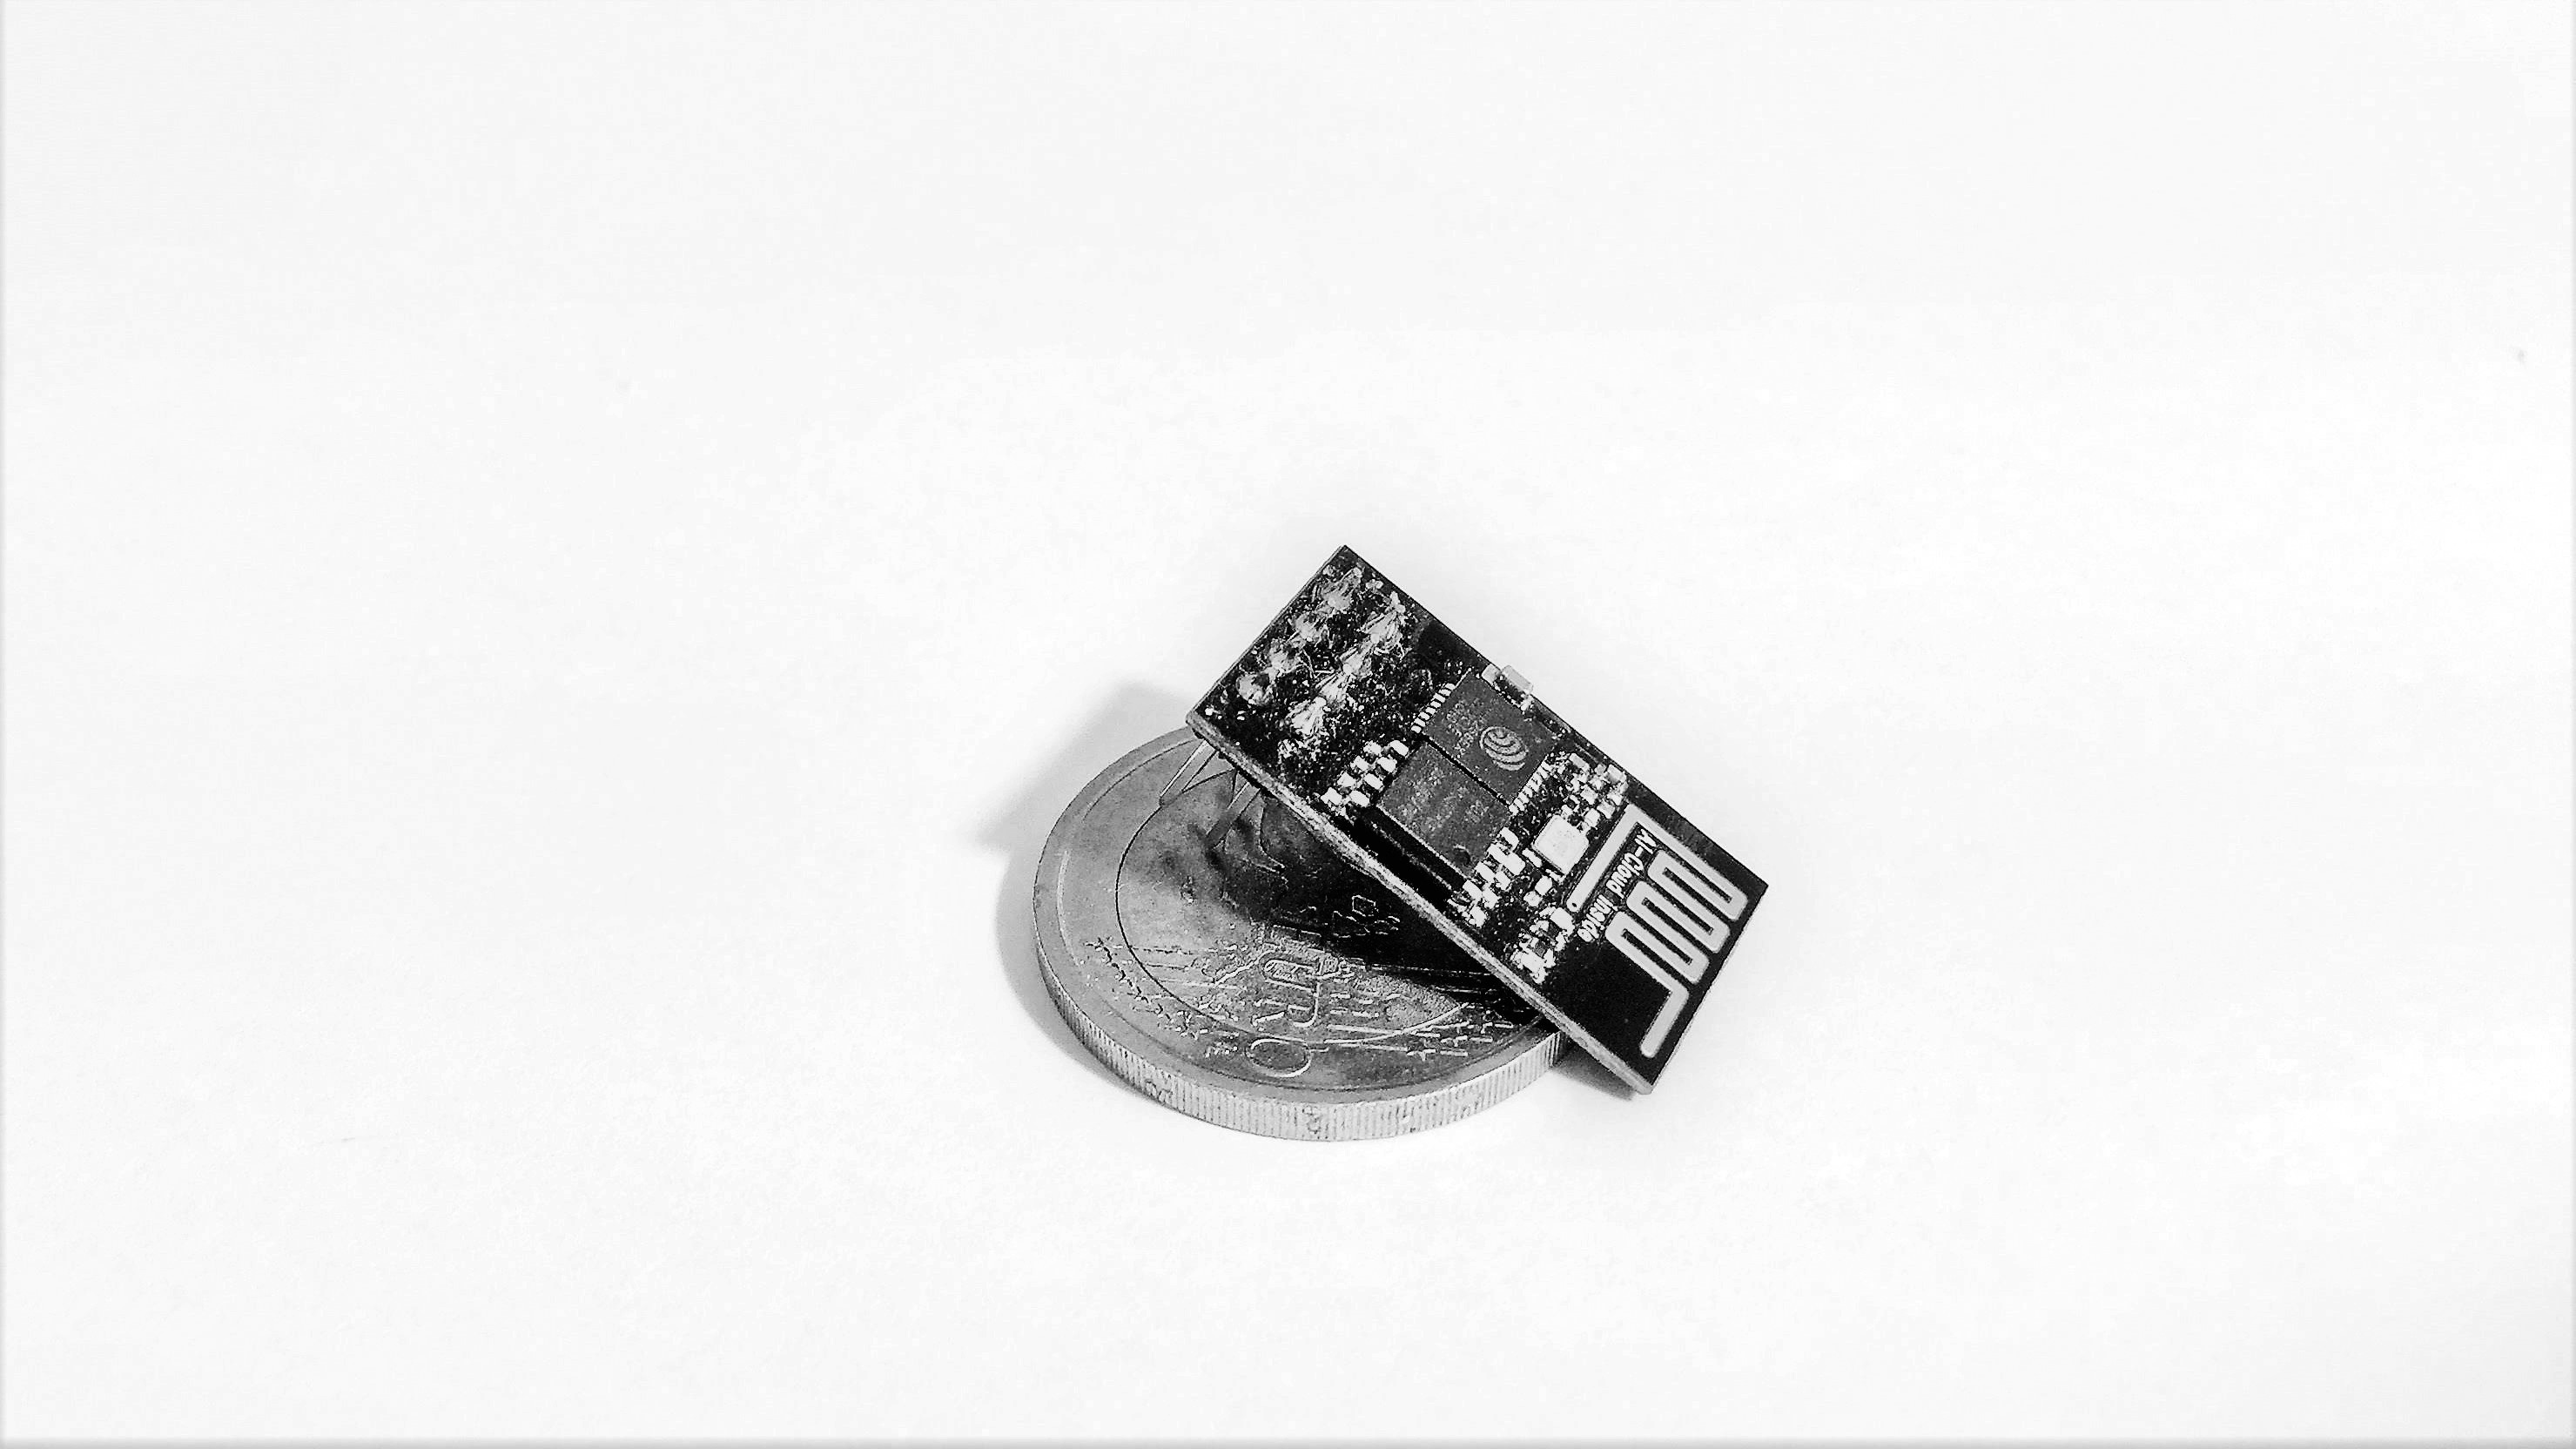 Testing of the ESP8266–01 WiFi module - Antonio Mancuso - Medium